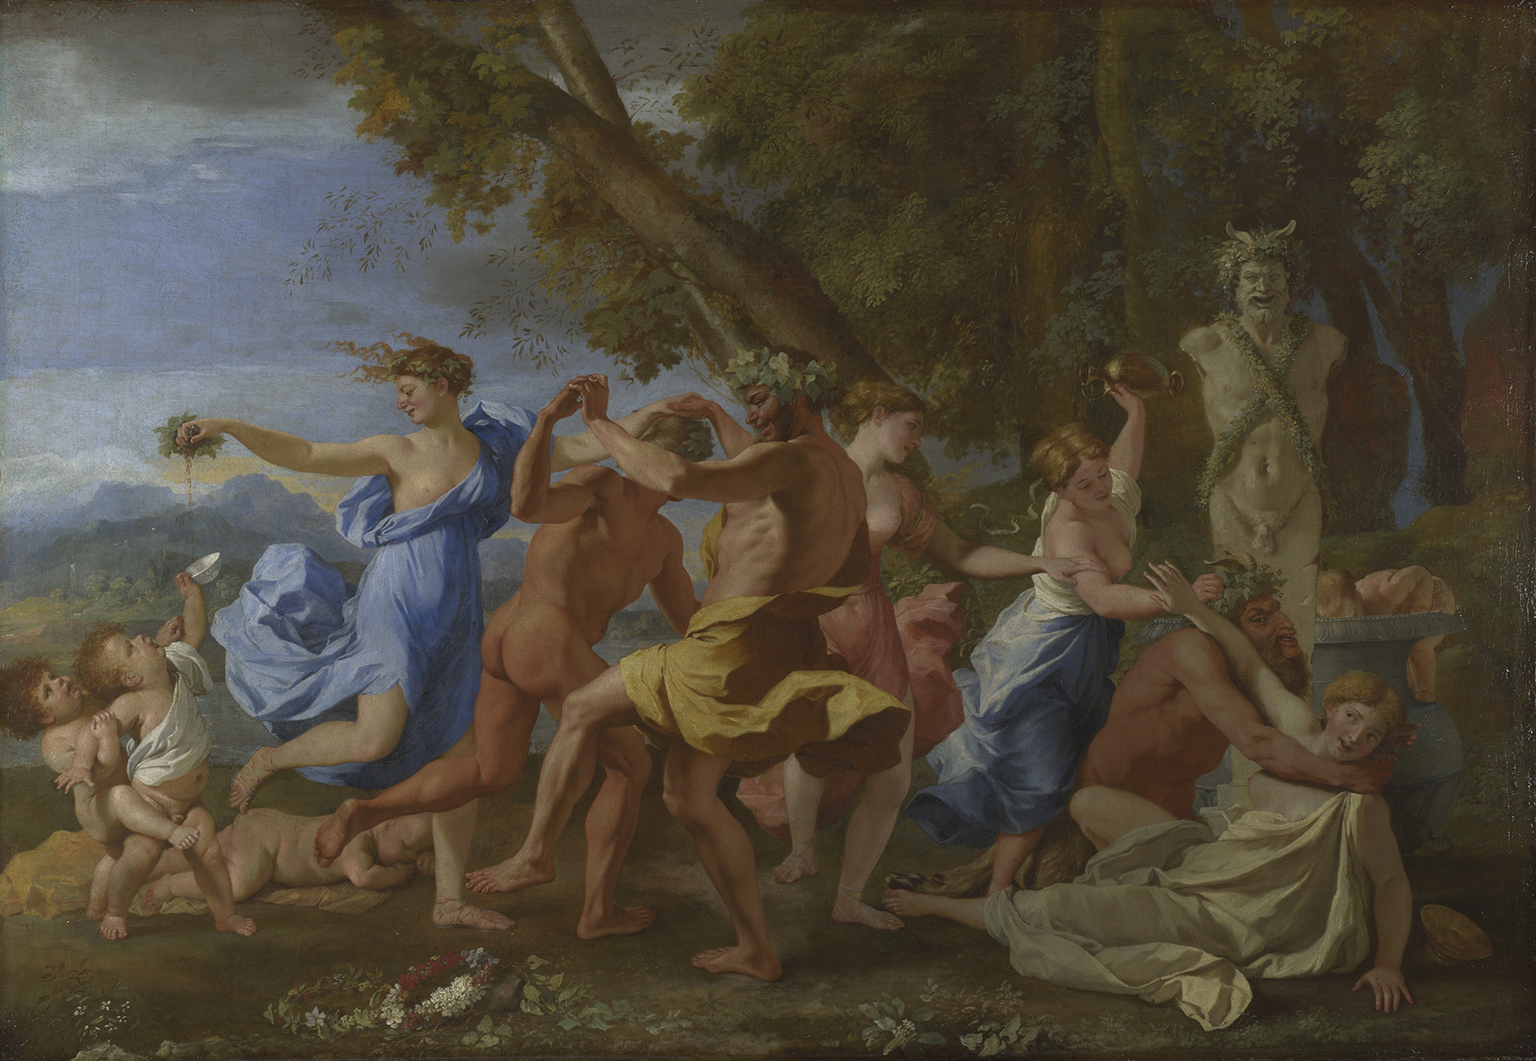 Nicolas Poussin, A Bacchanalian Revel before a Term, 1632-3, Oil on canvas, 98 x 142.8 cm. Poussin and the Dance at National Gallery 9 October 2021 - 2 January 2022